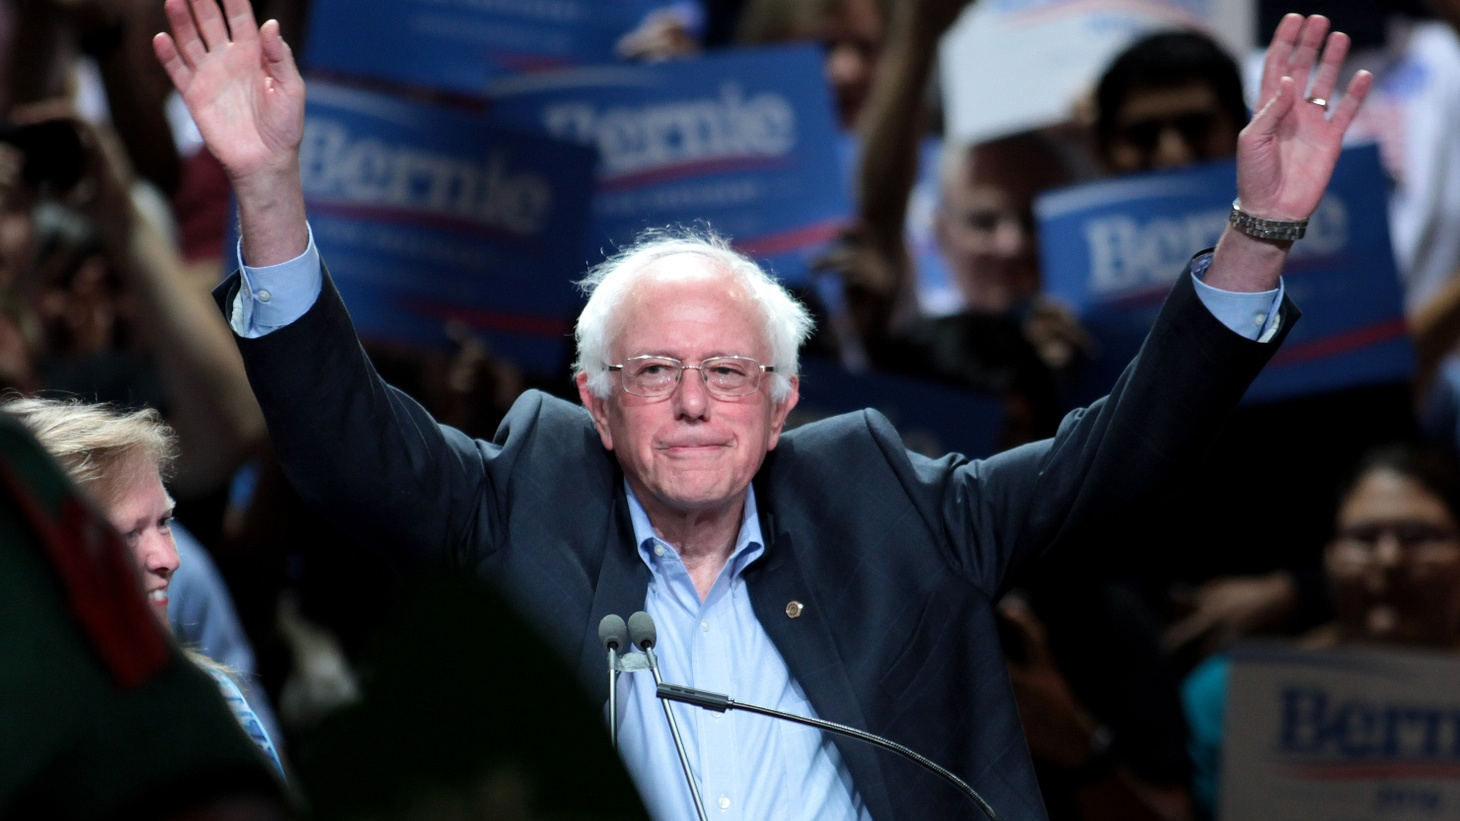 Against all odds, Bernie Sanders defeated Hillary Clinton yesterday in Michigan's Democratic primary. Maybe it's the economy again, stupid…just as Bill Clinton figured out in 1992. We hear what's next for a campaign that's a lot more competitive than anybody expected.